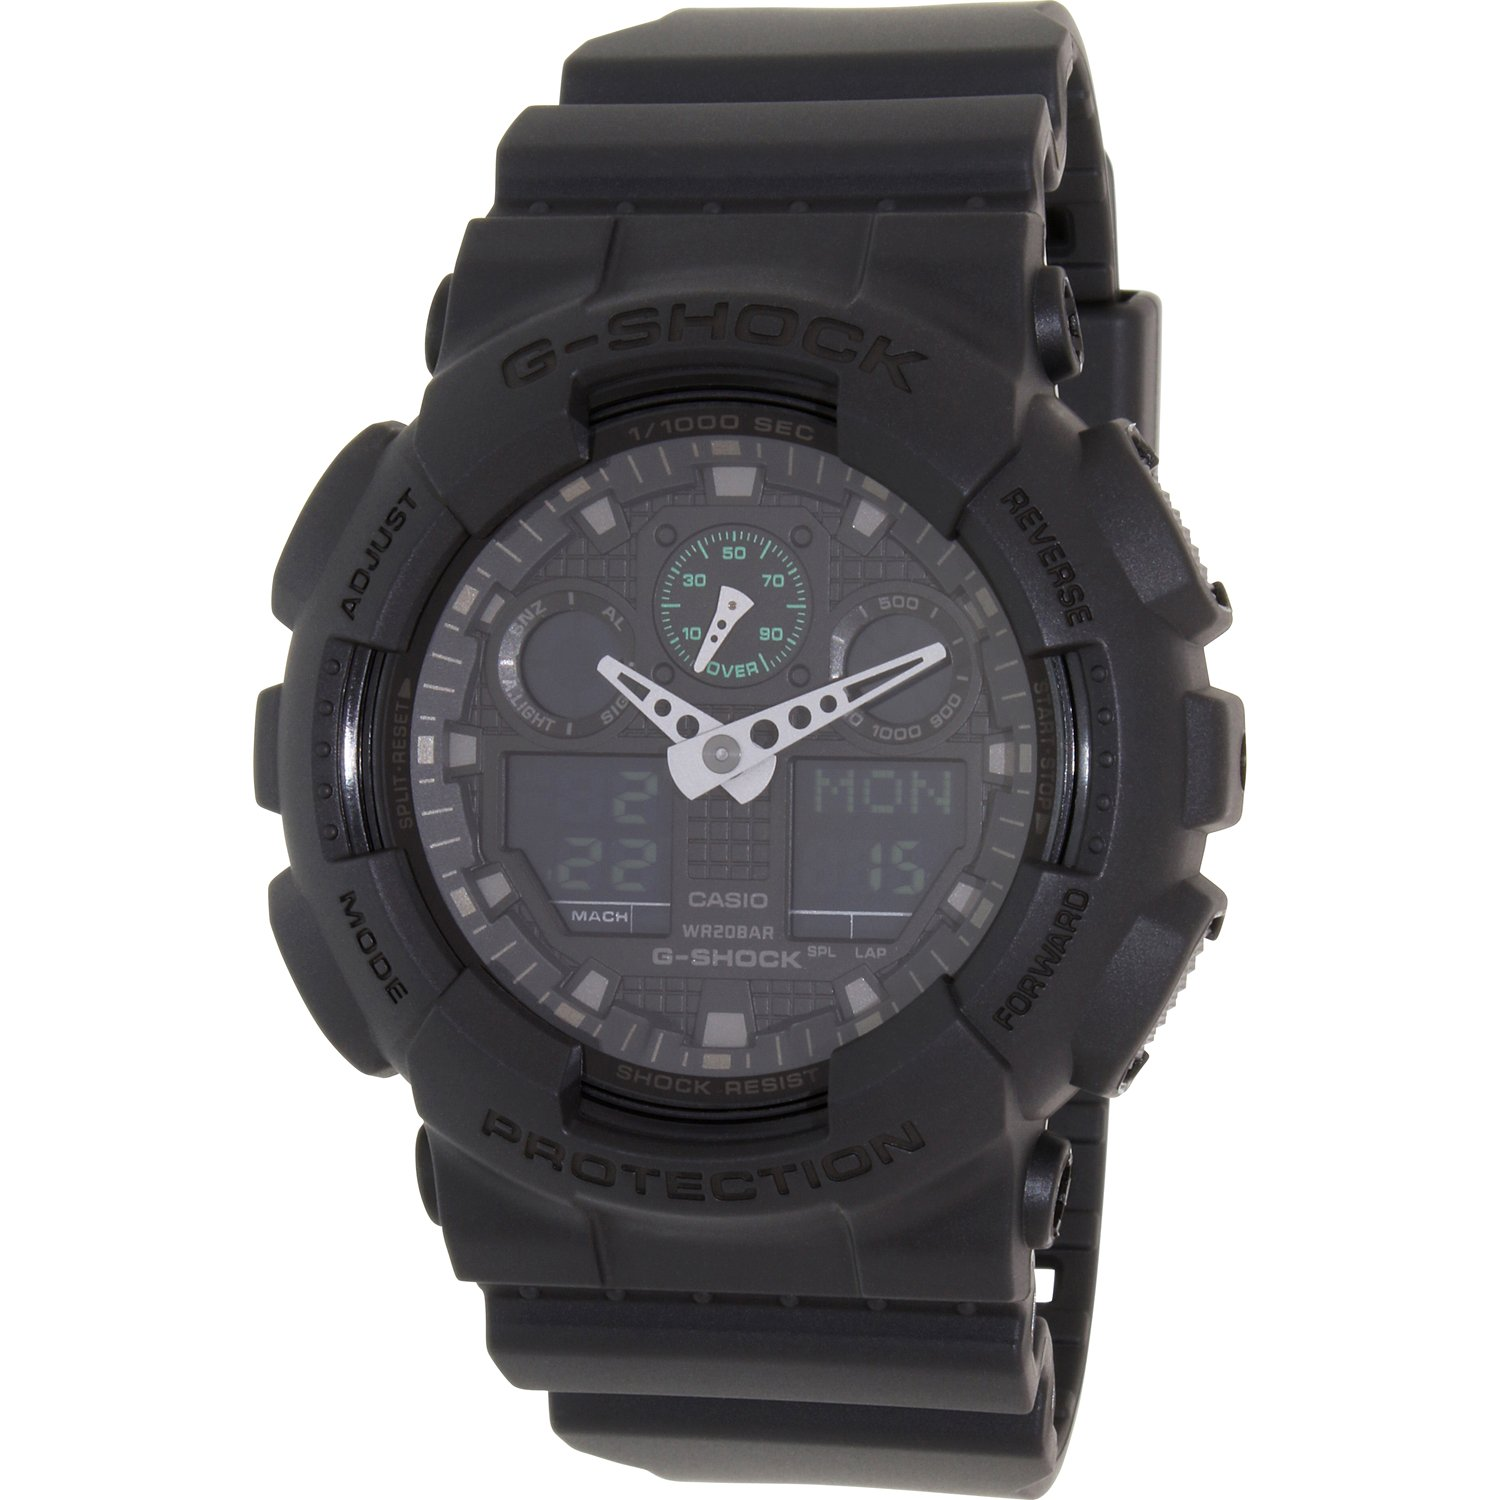 Casio G-Shock Military Black GA100MB-1A 3-Eye Ana-Digi Wrist